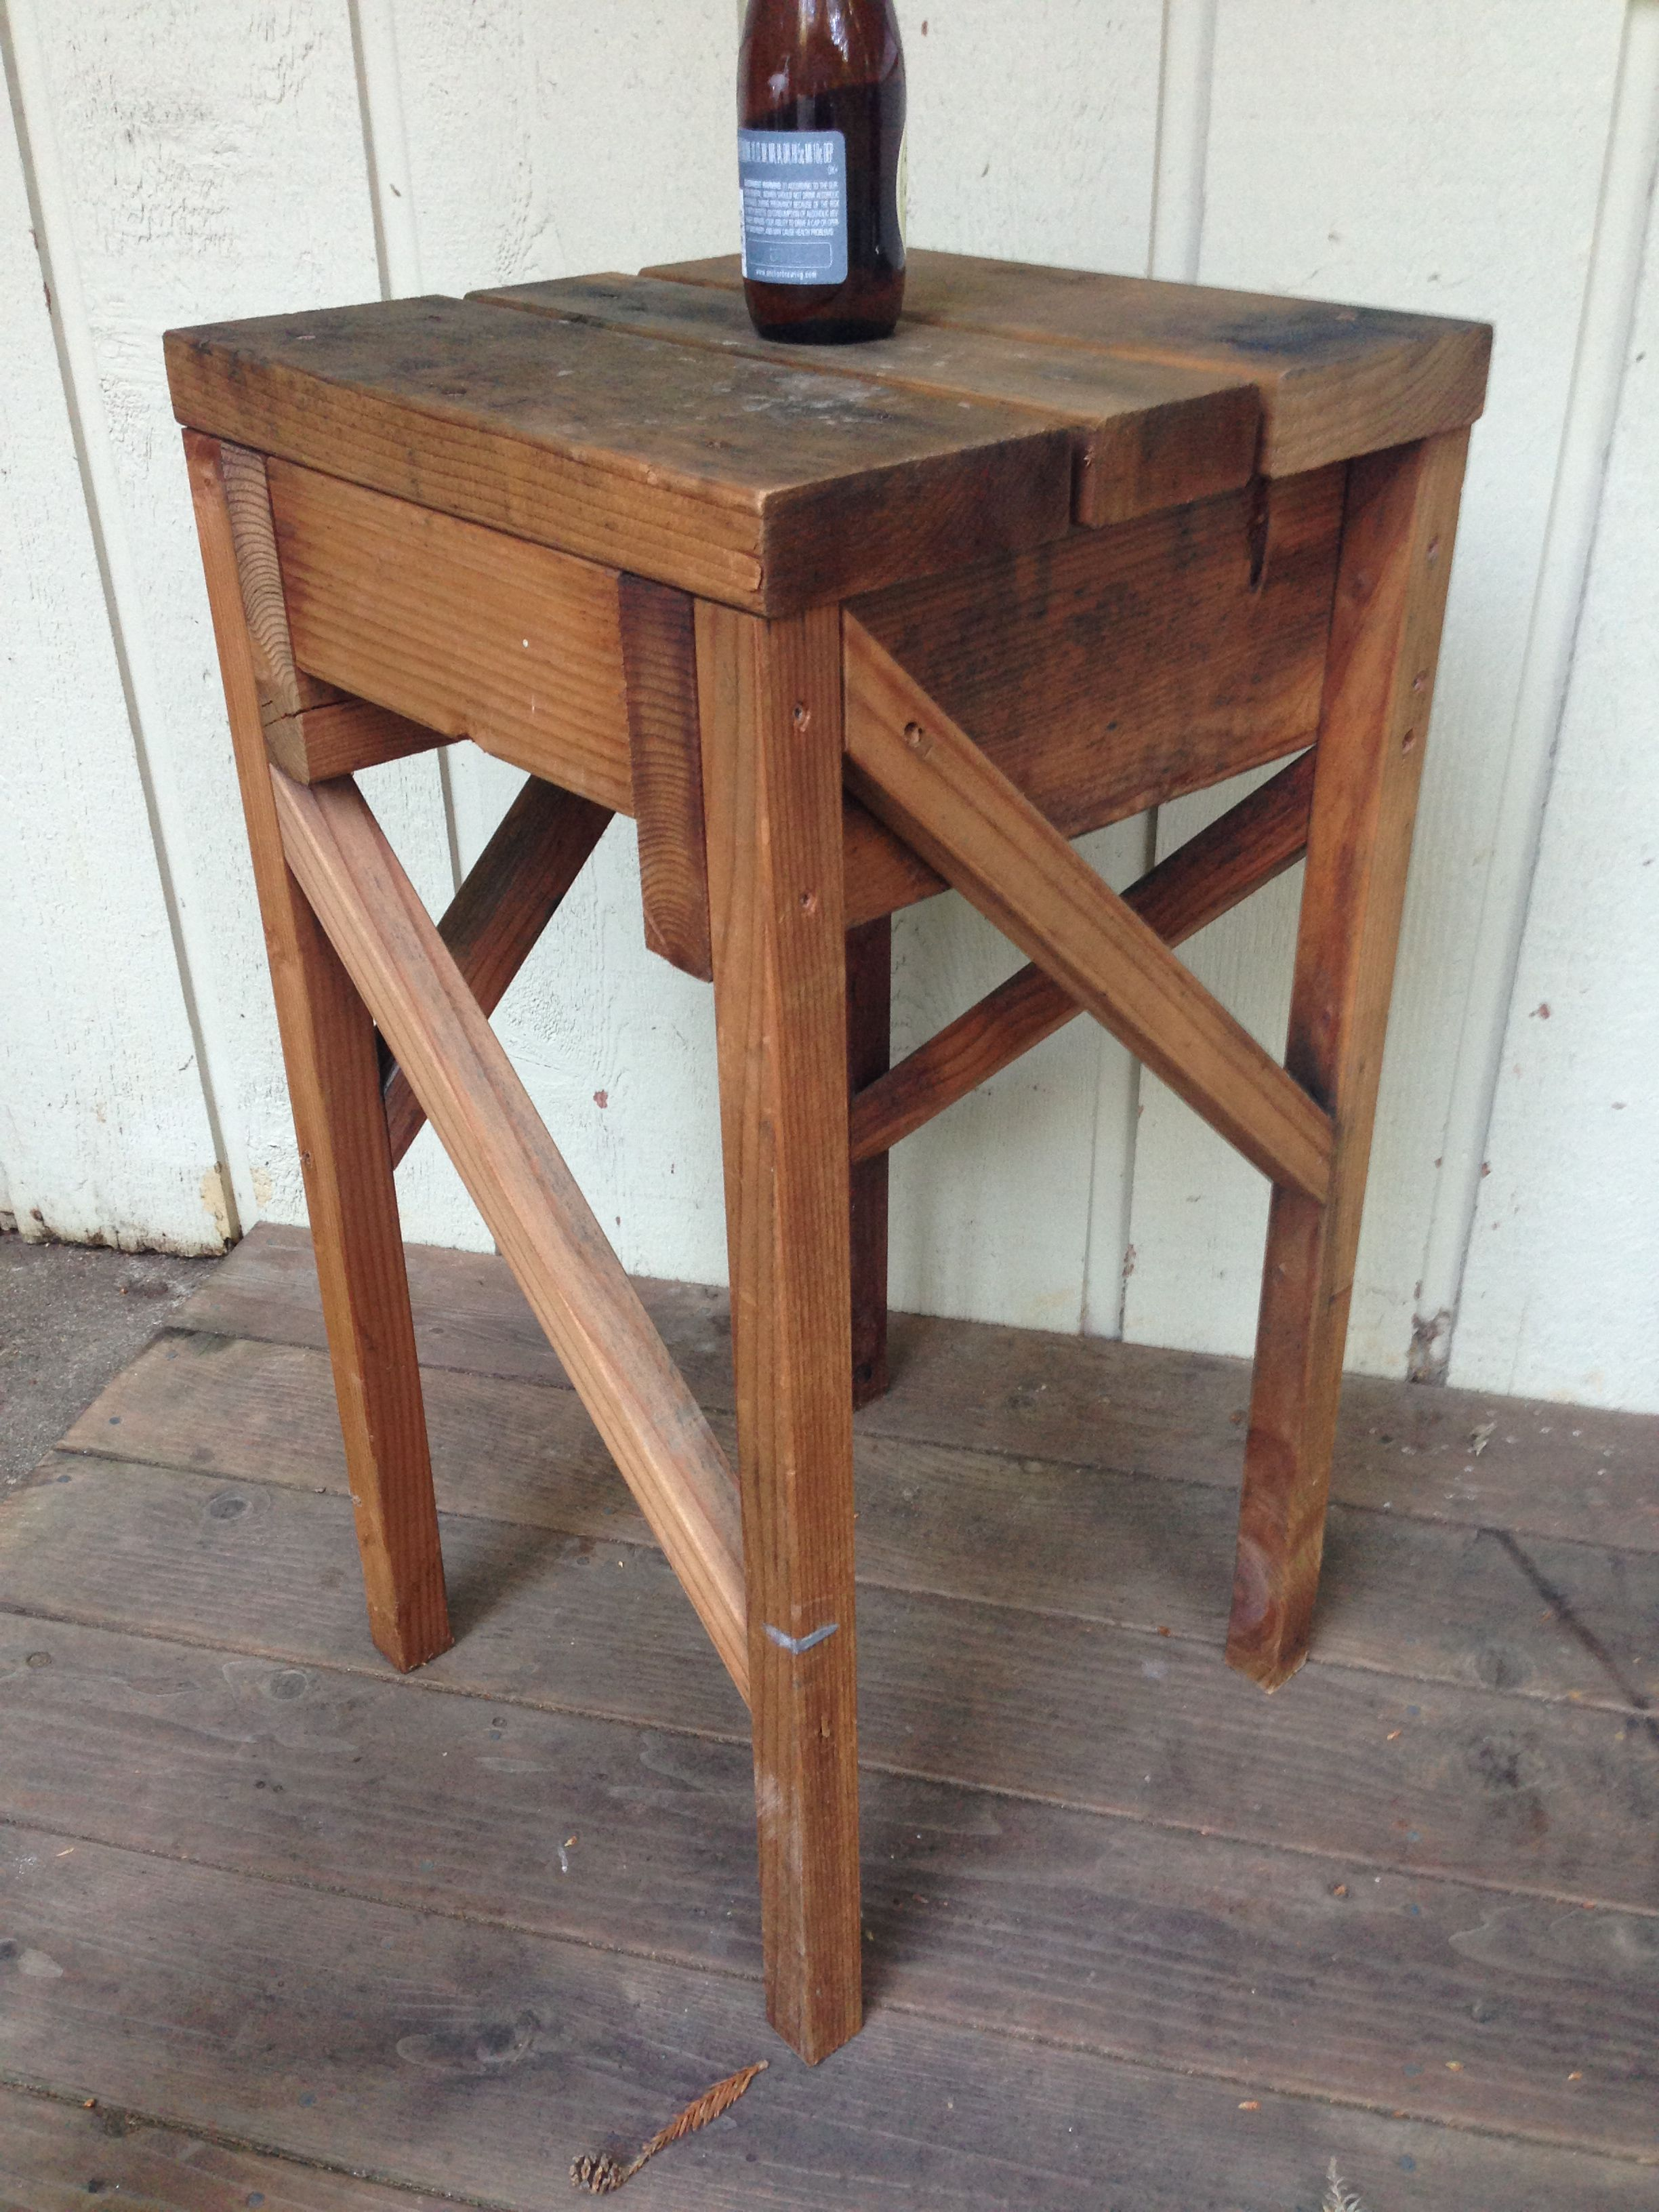 Fun little table I made out of 2x2 2x4 & 2x6 redwood scraps